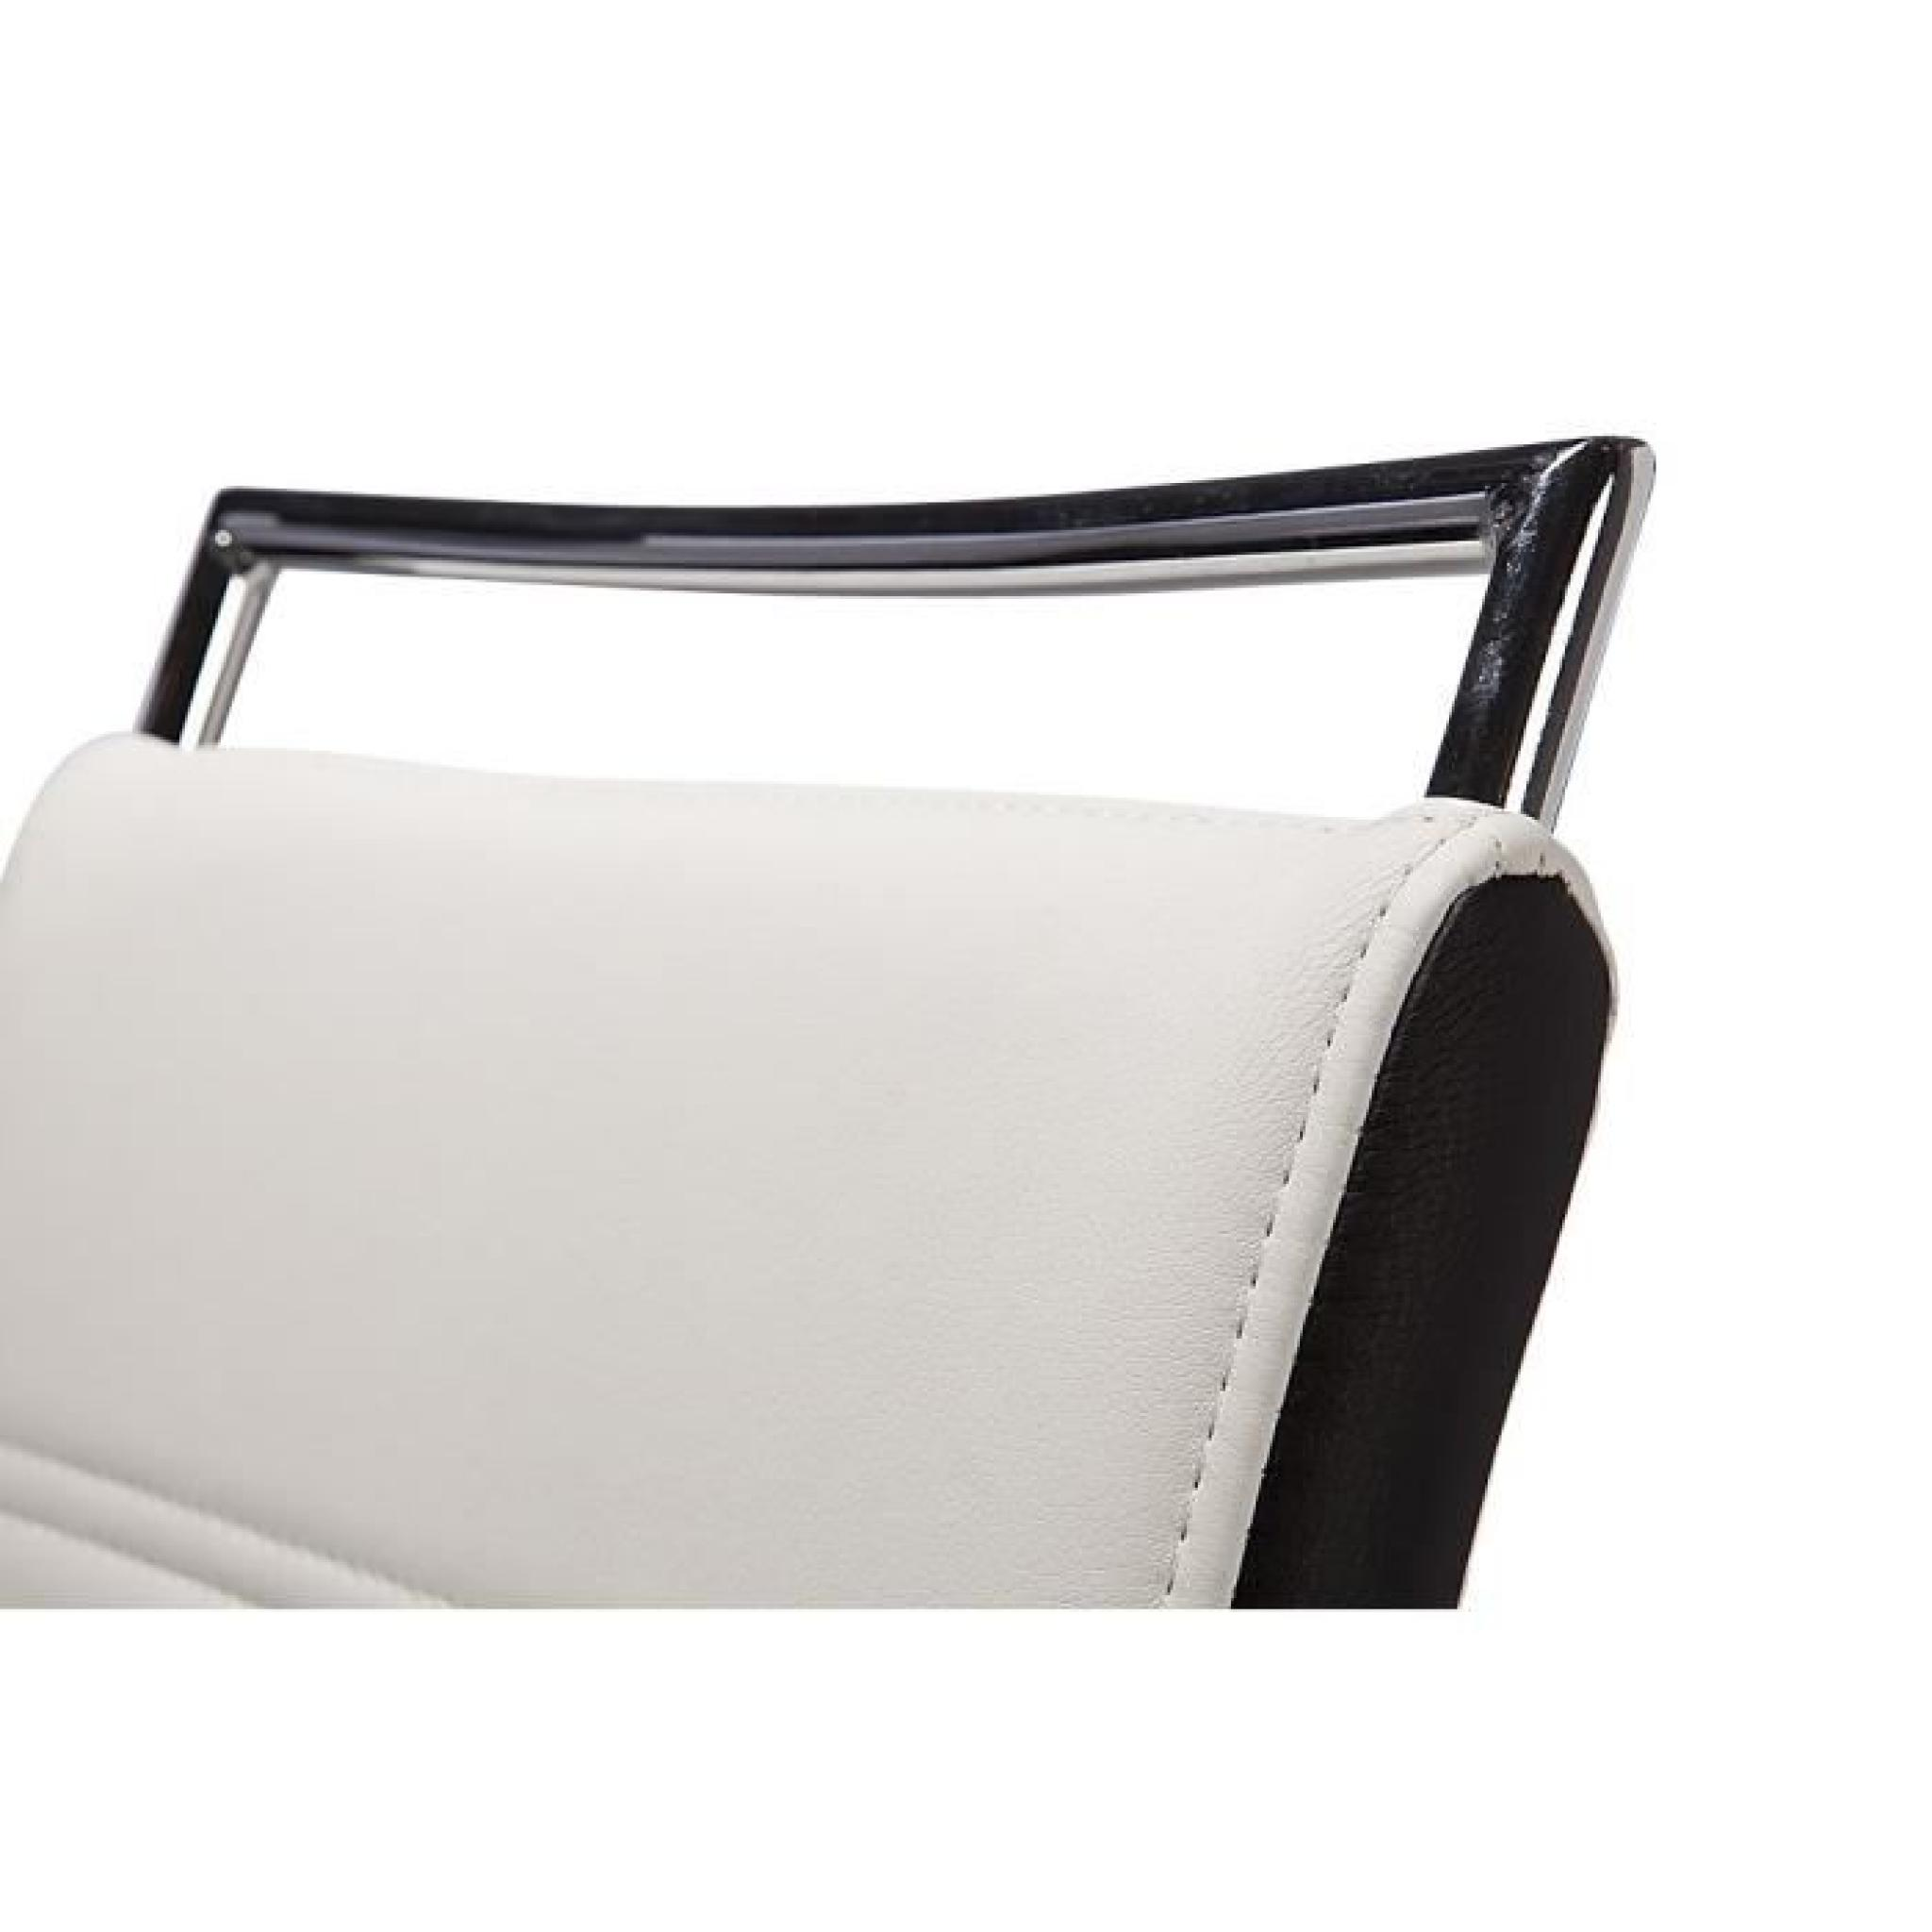 Chaise Blanche Cdiscount Chaise Blanche Cdiscount Affordable Chaises Blanche